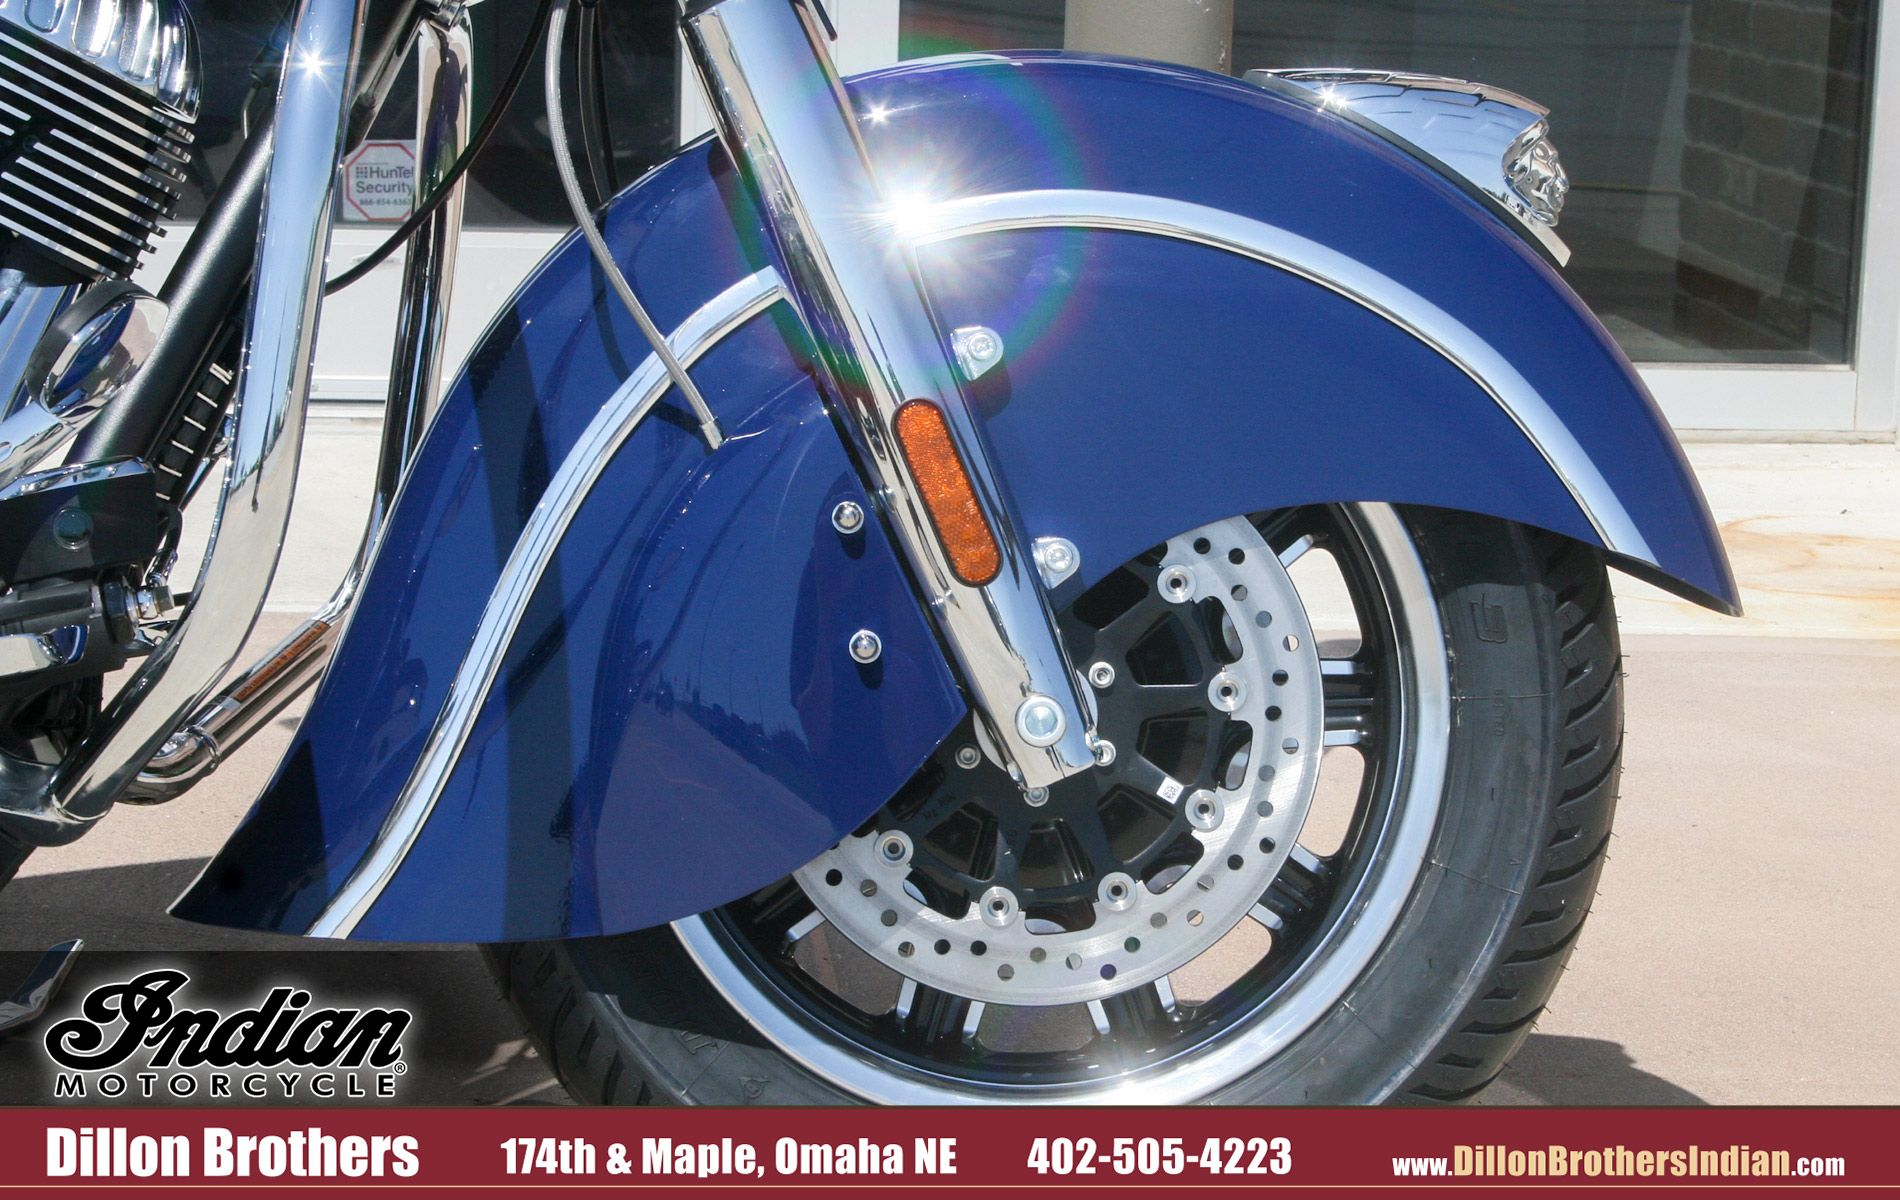 Nebraska Motorcycle Events 2020.Blue Indian Chieftain Front Fender And Wheel Close Up View